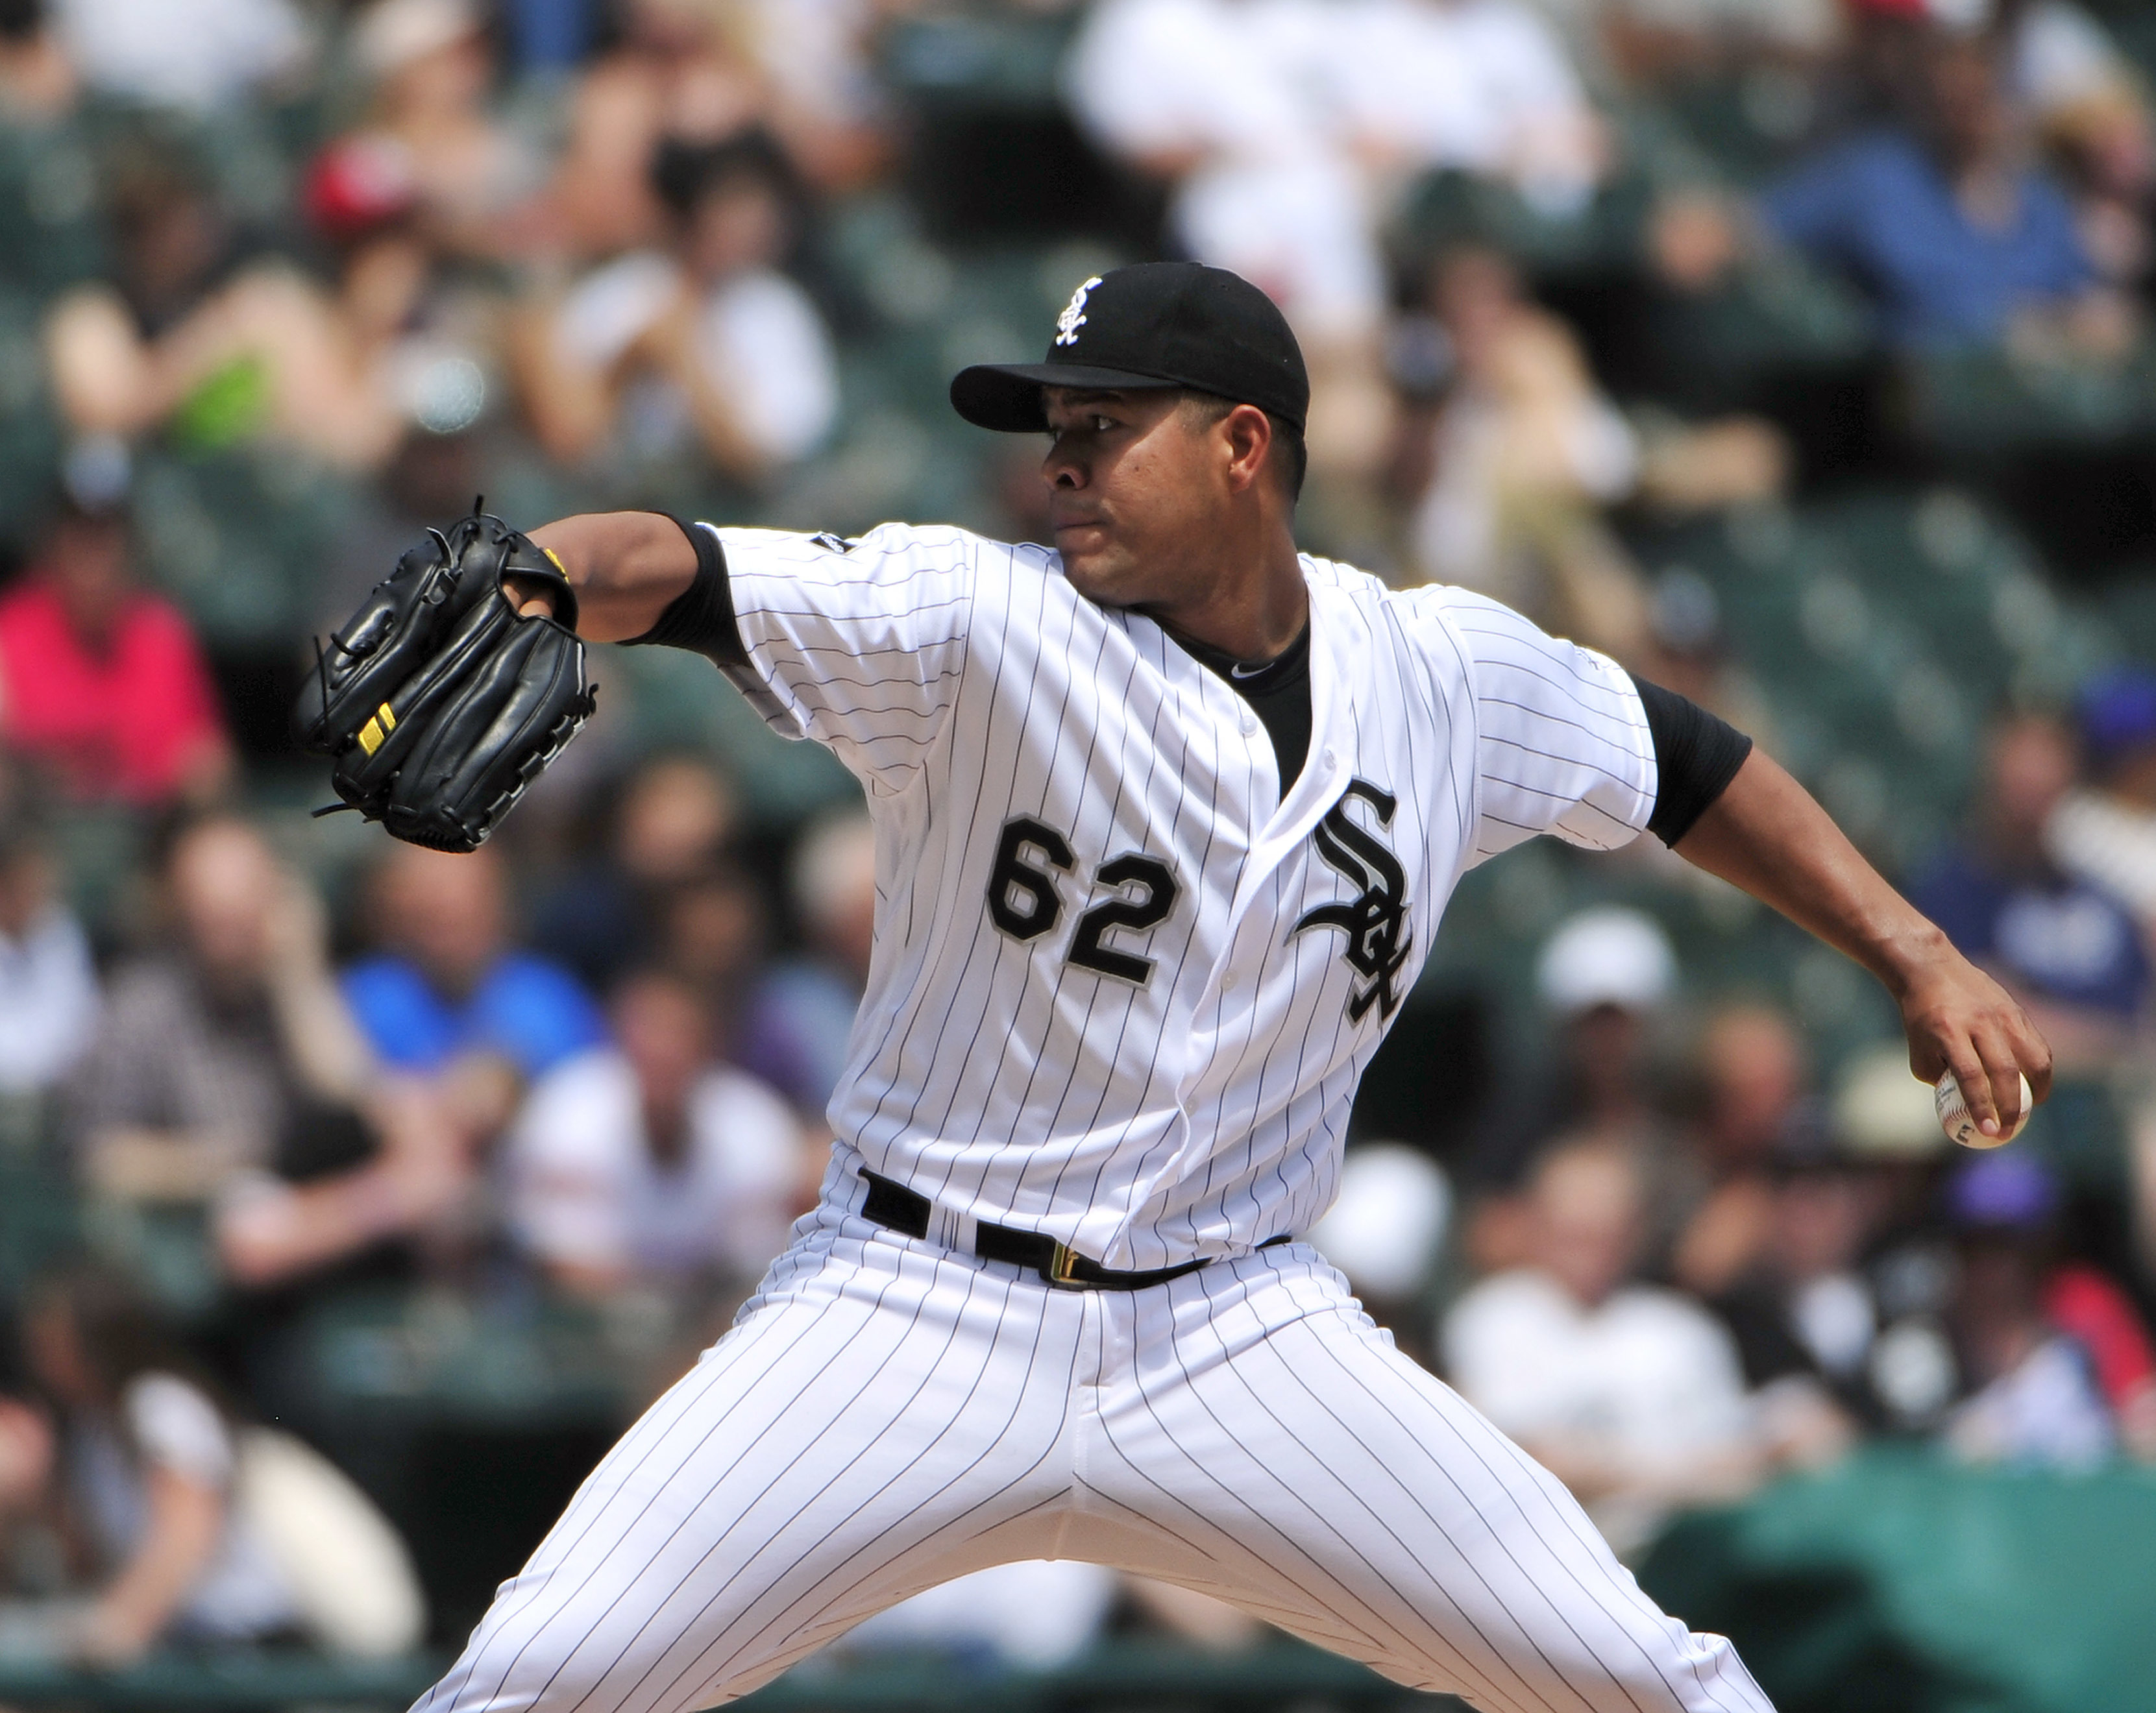 Chicago White Sox starting pitcher Jose Quintana throws against the Cleveland Indians during the second inning of a baseball game, Wednesday, May 25, 2016, in Chicago. (AP Photo/David Banks)